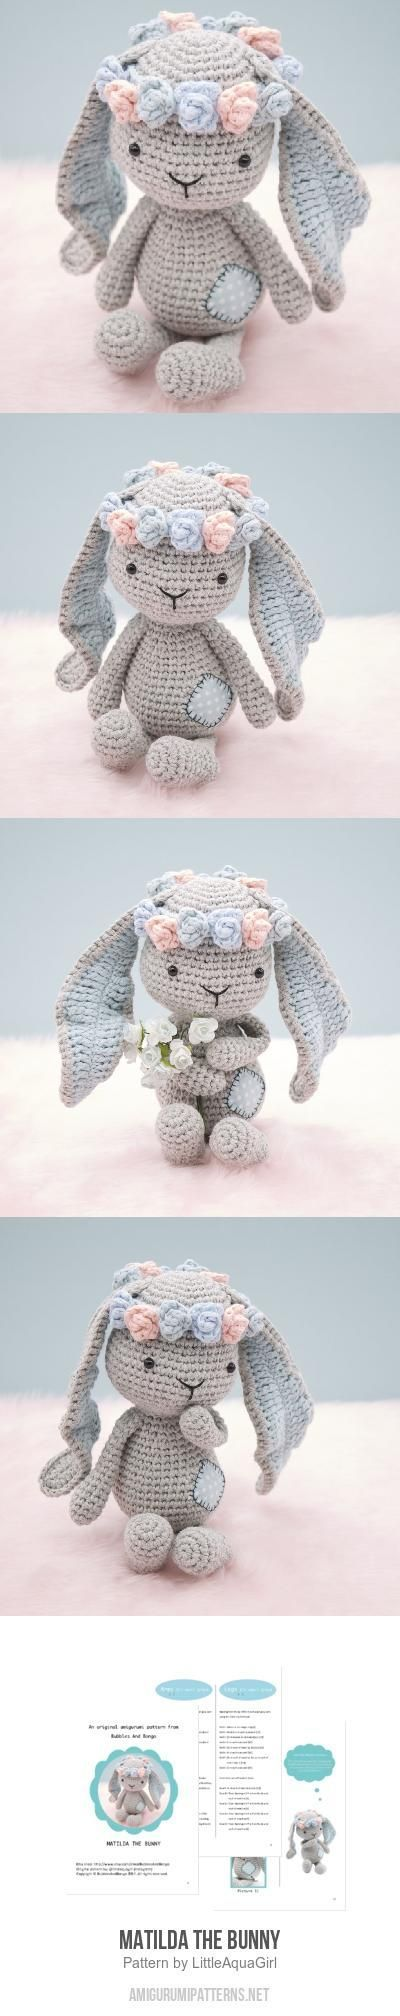 Matilda The Bunny Amigurumi Pattern | Vêtement enfant | Pinterest ...